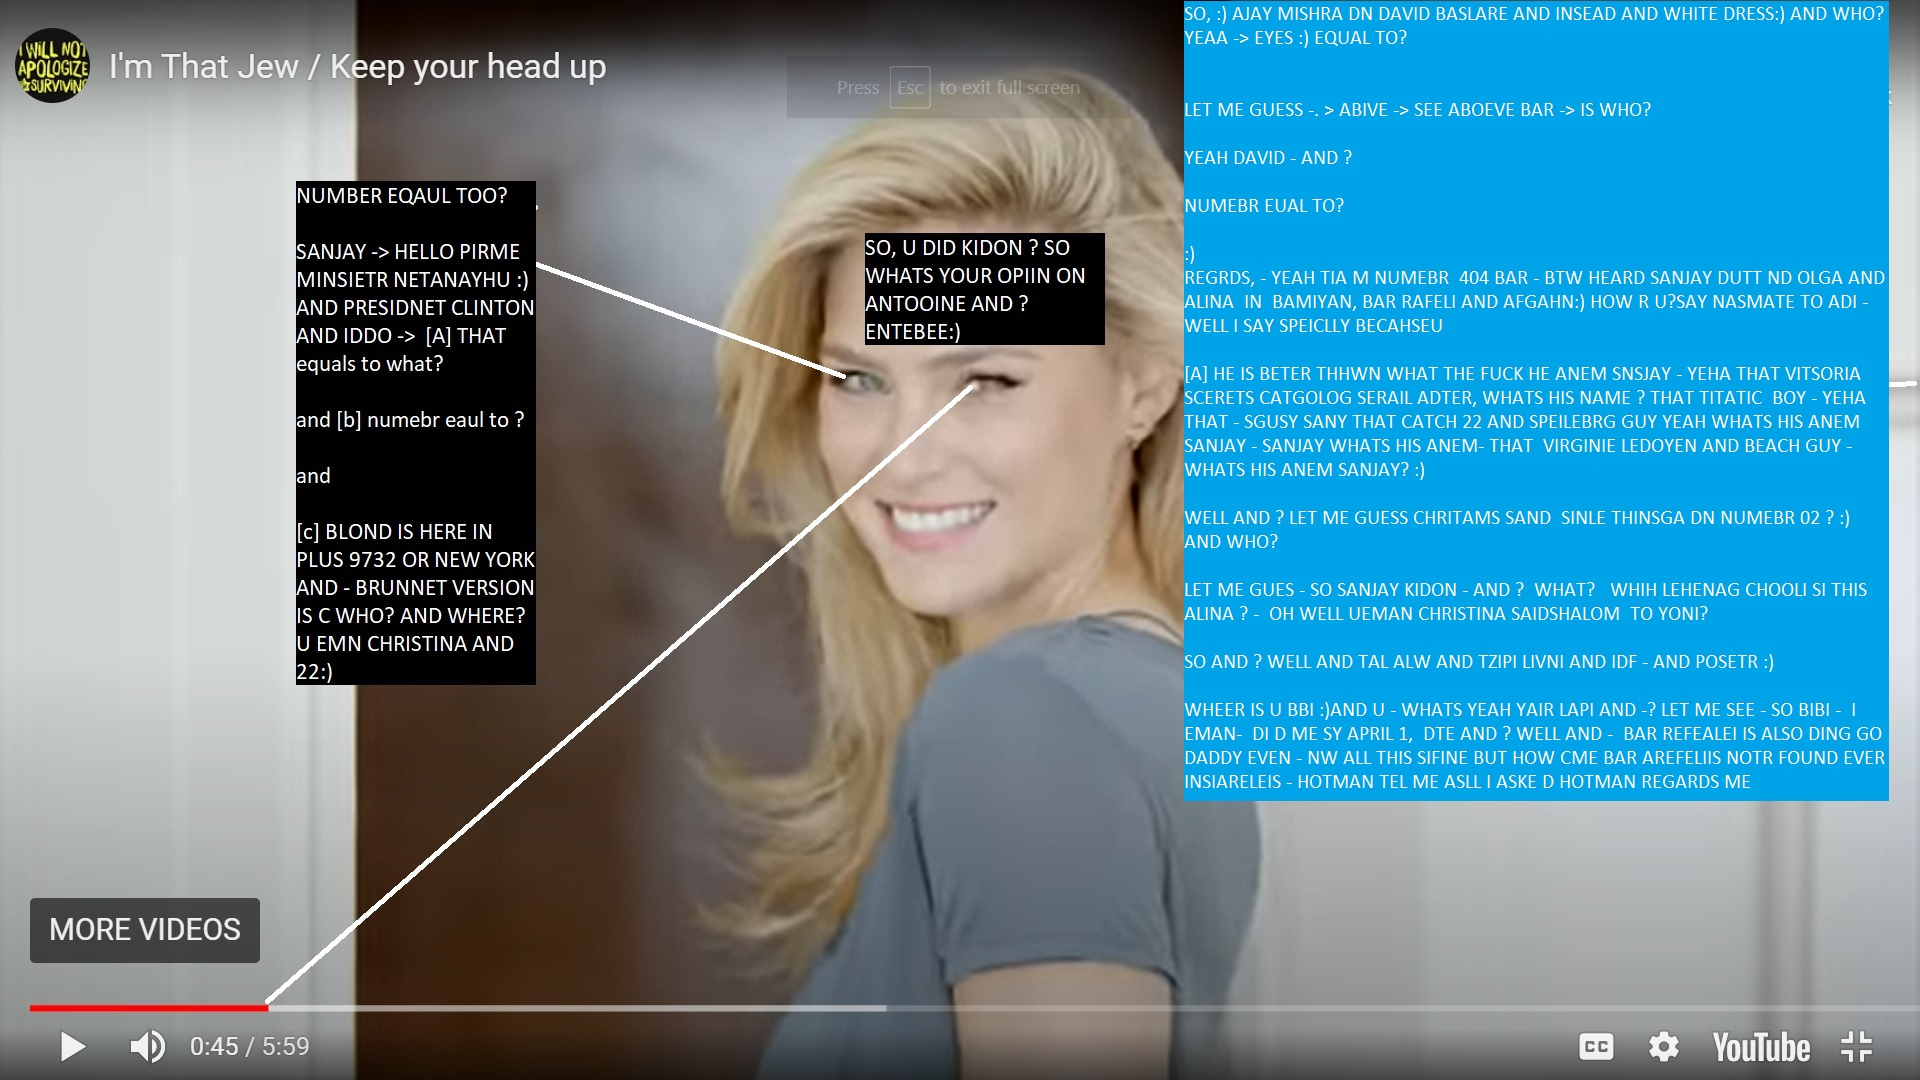 TOO BAR REFAELI FROM YOI NETANAYHU WSO WHATS THIS NUMEBR BAR- I MEAN45 IS IT - REGARSD -- 643361467 NUMEER